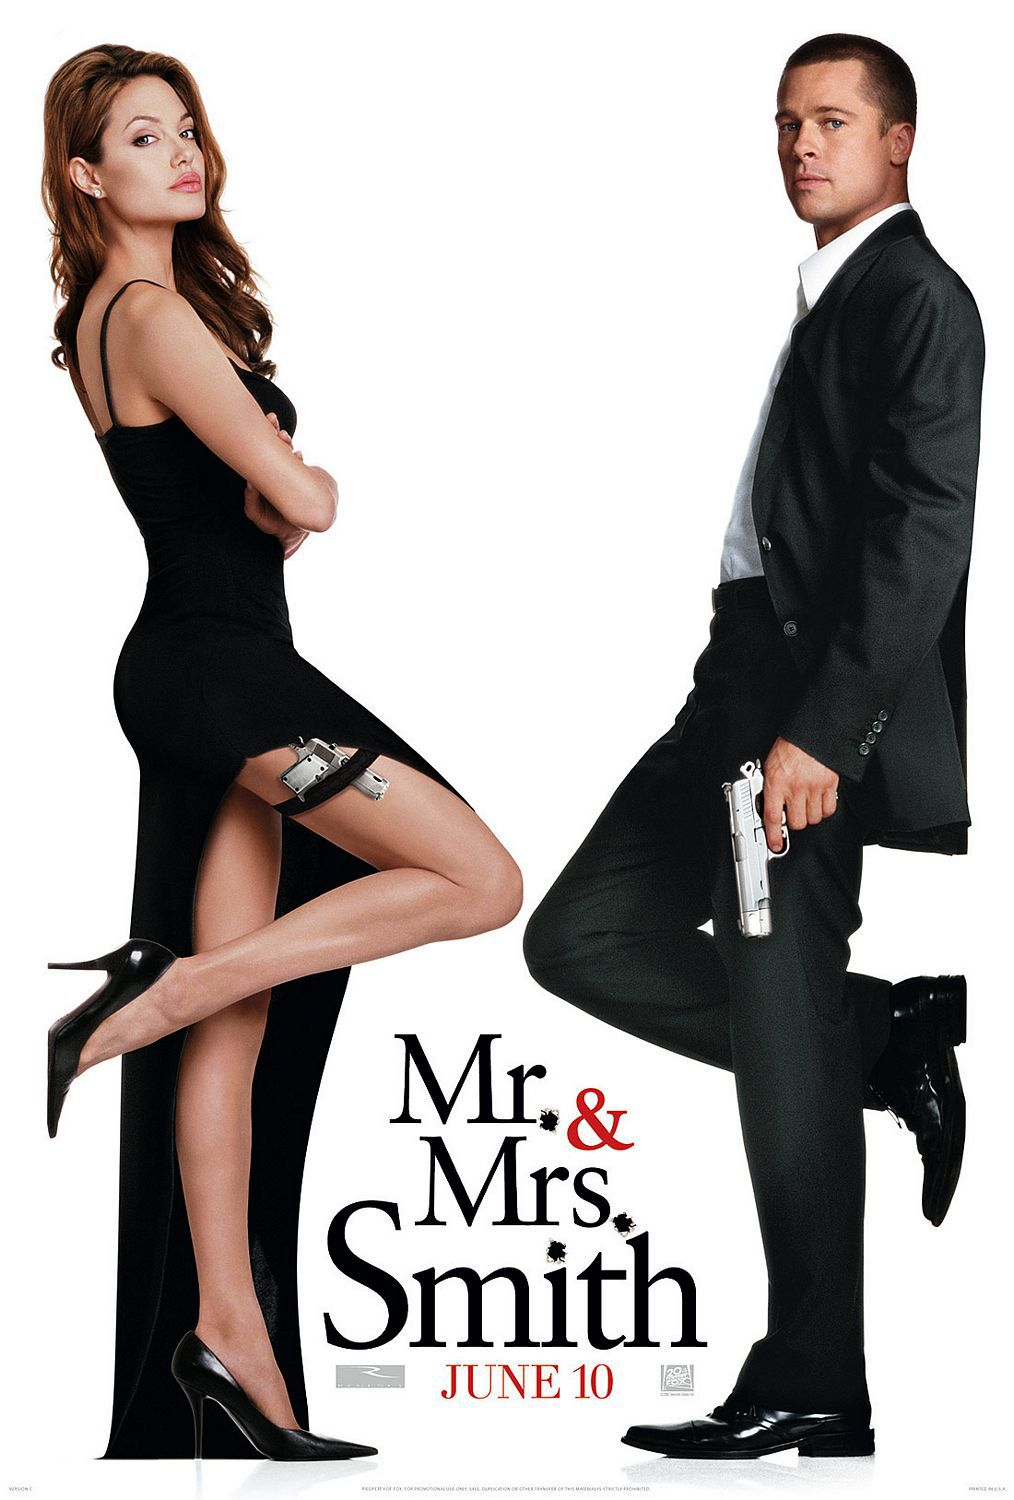 Mr and Mrs Smith - spies film poster